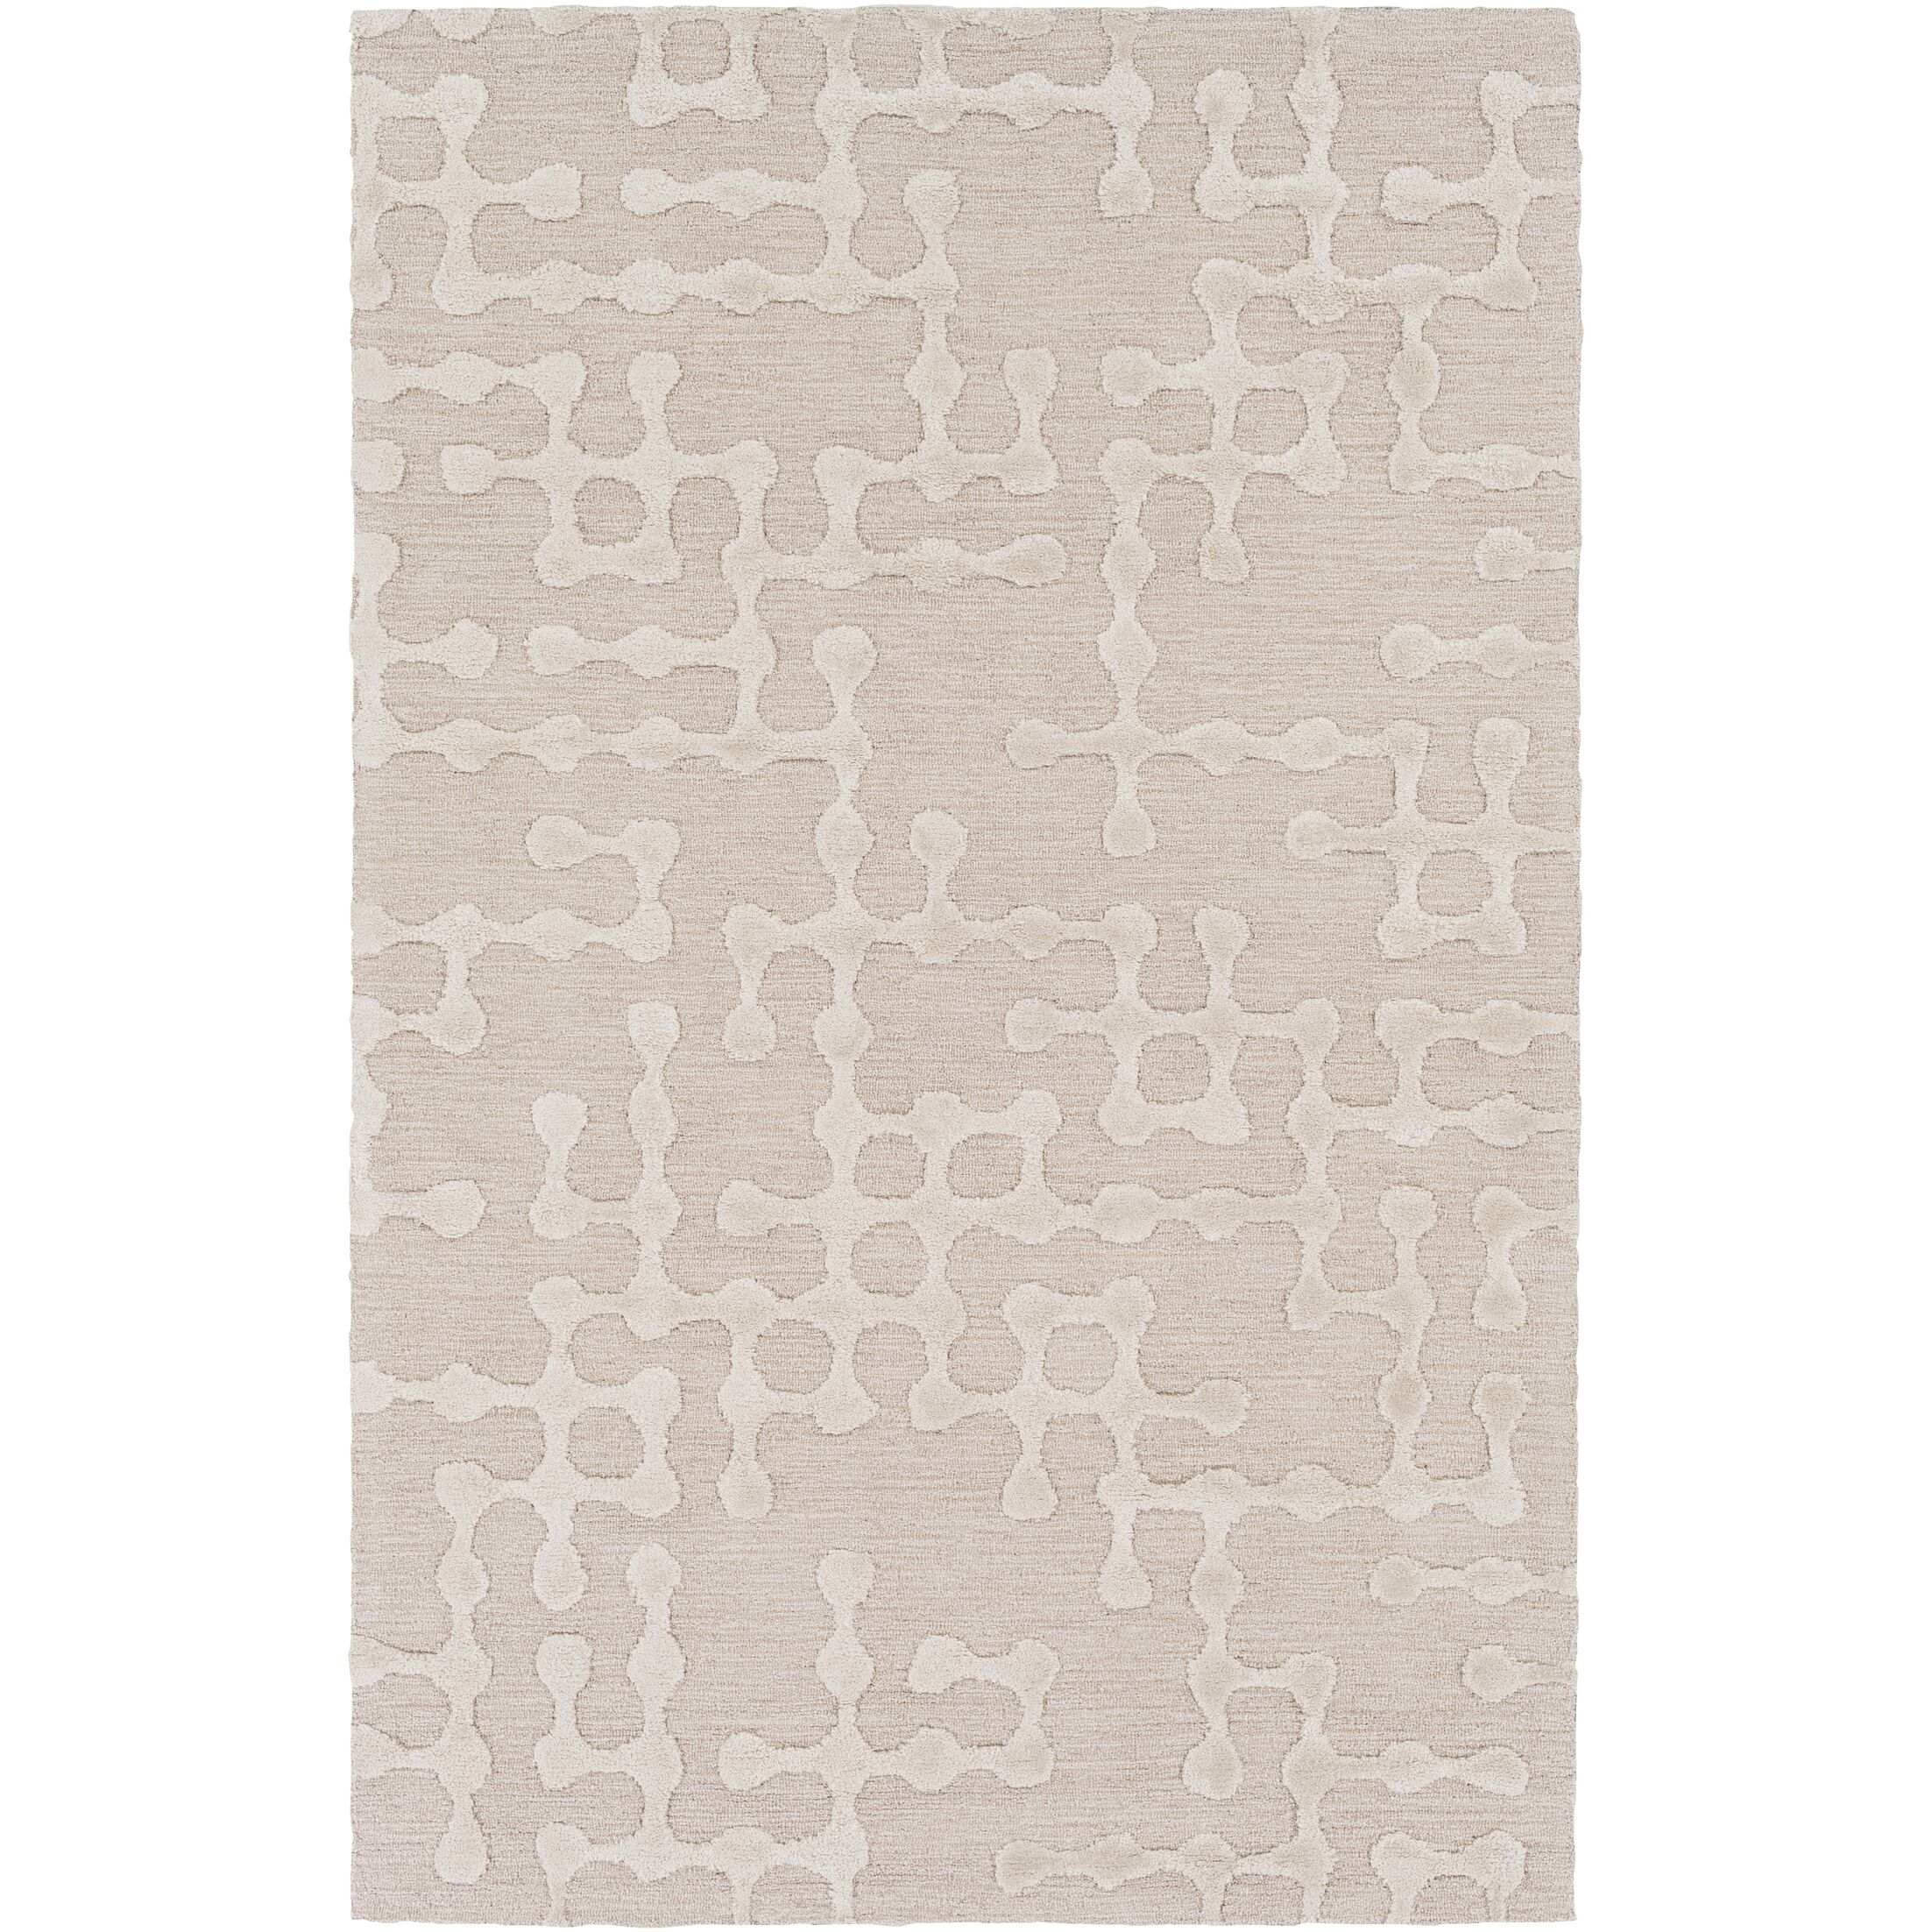 Serpentis Hand-Hooked Beige/Ivory Area Rug Rug Size: Rectangle 12' x 15'